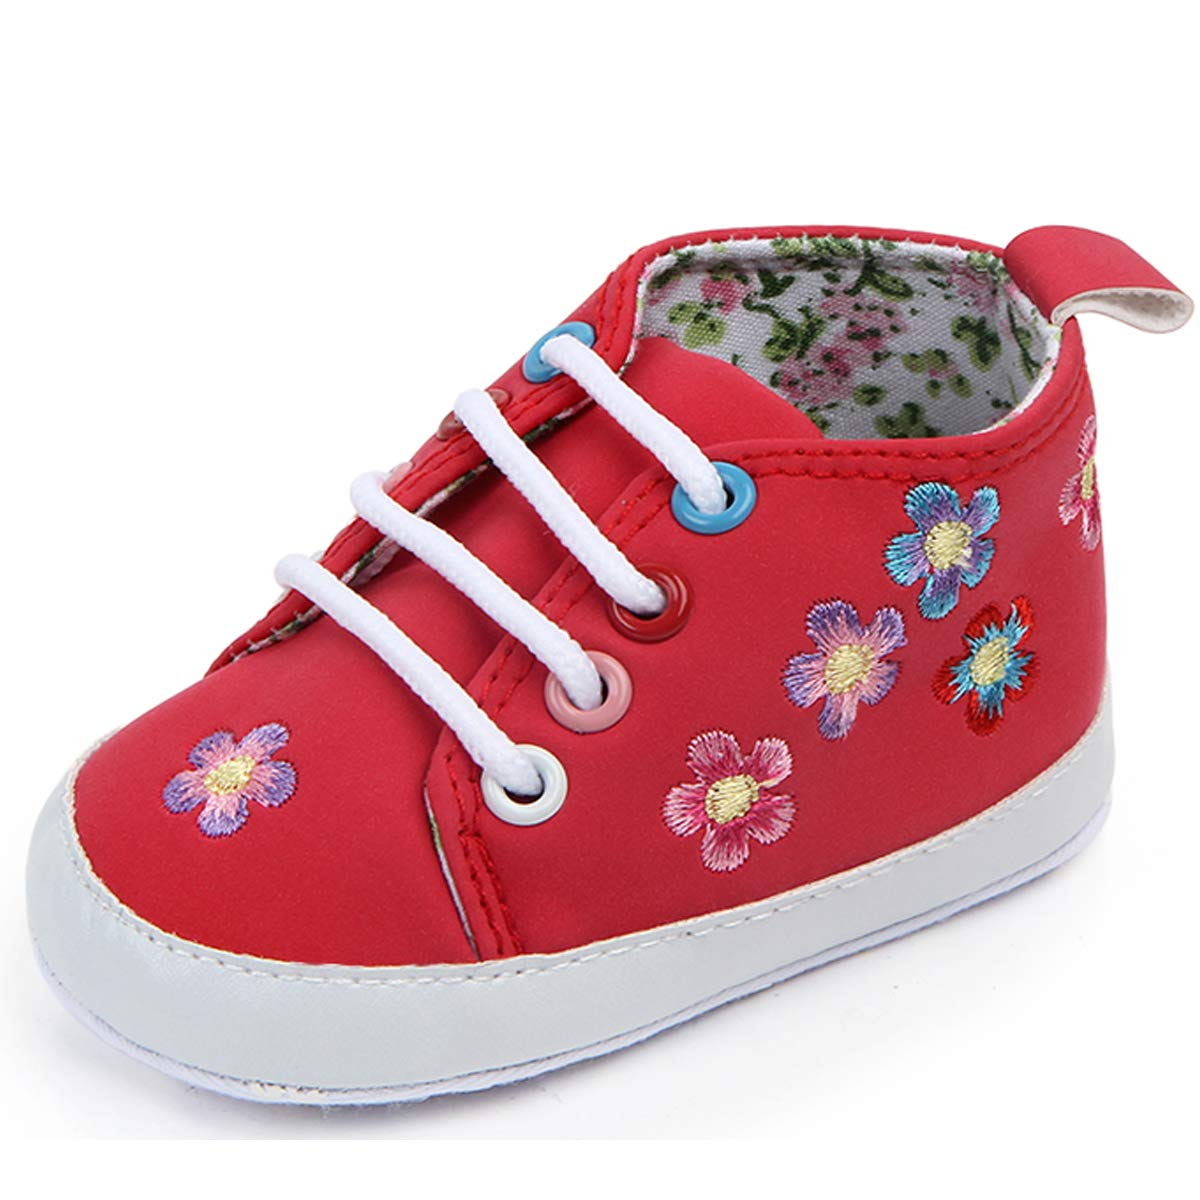 anbiwangluo Unisex Baby Sneakers Infant Canvas Shoes Girls /& Boys First Walkers